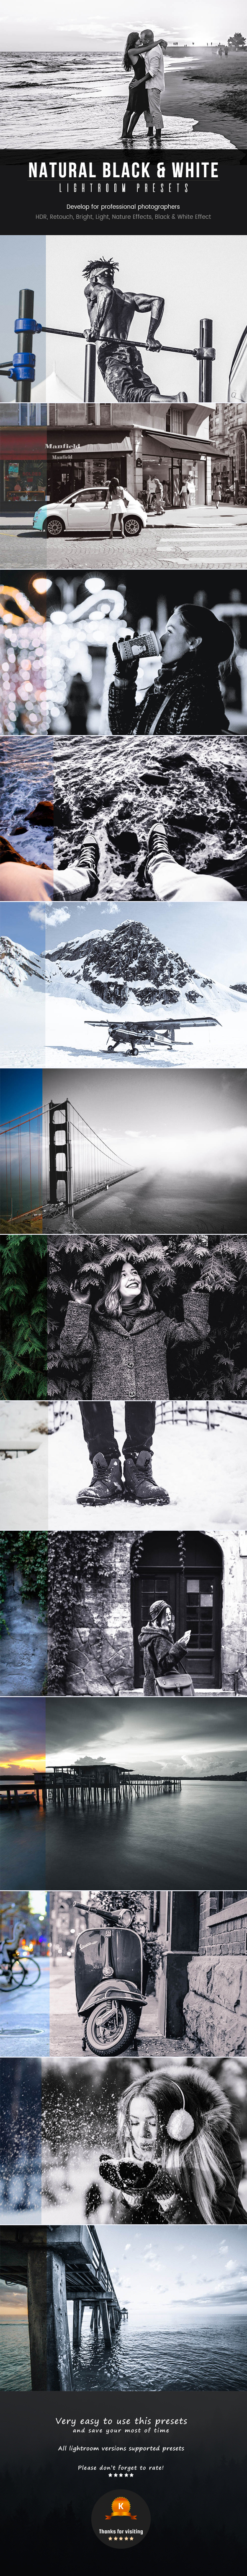 GraphicRiver Natural Black & White Lightroom Presets 20907682